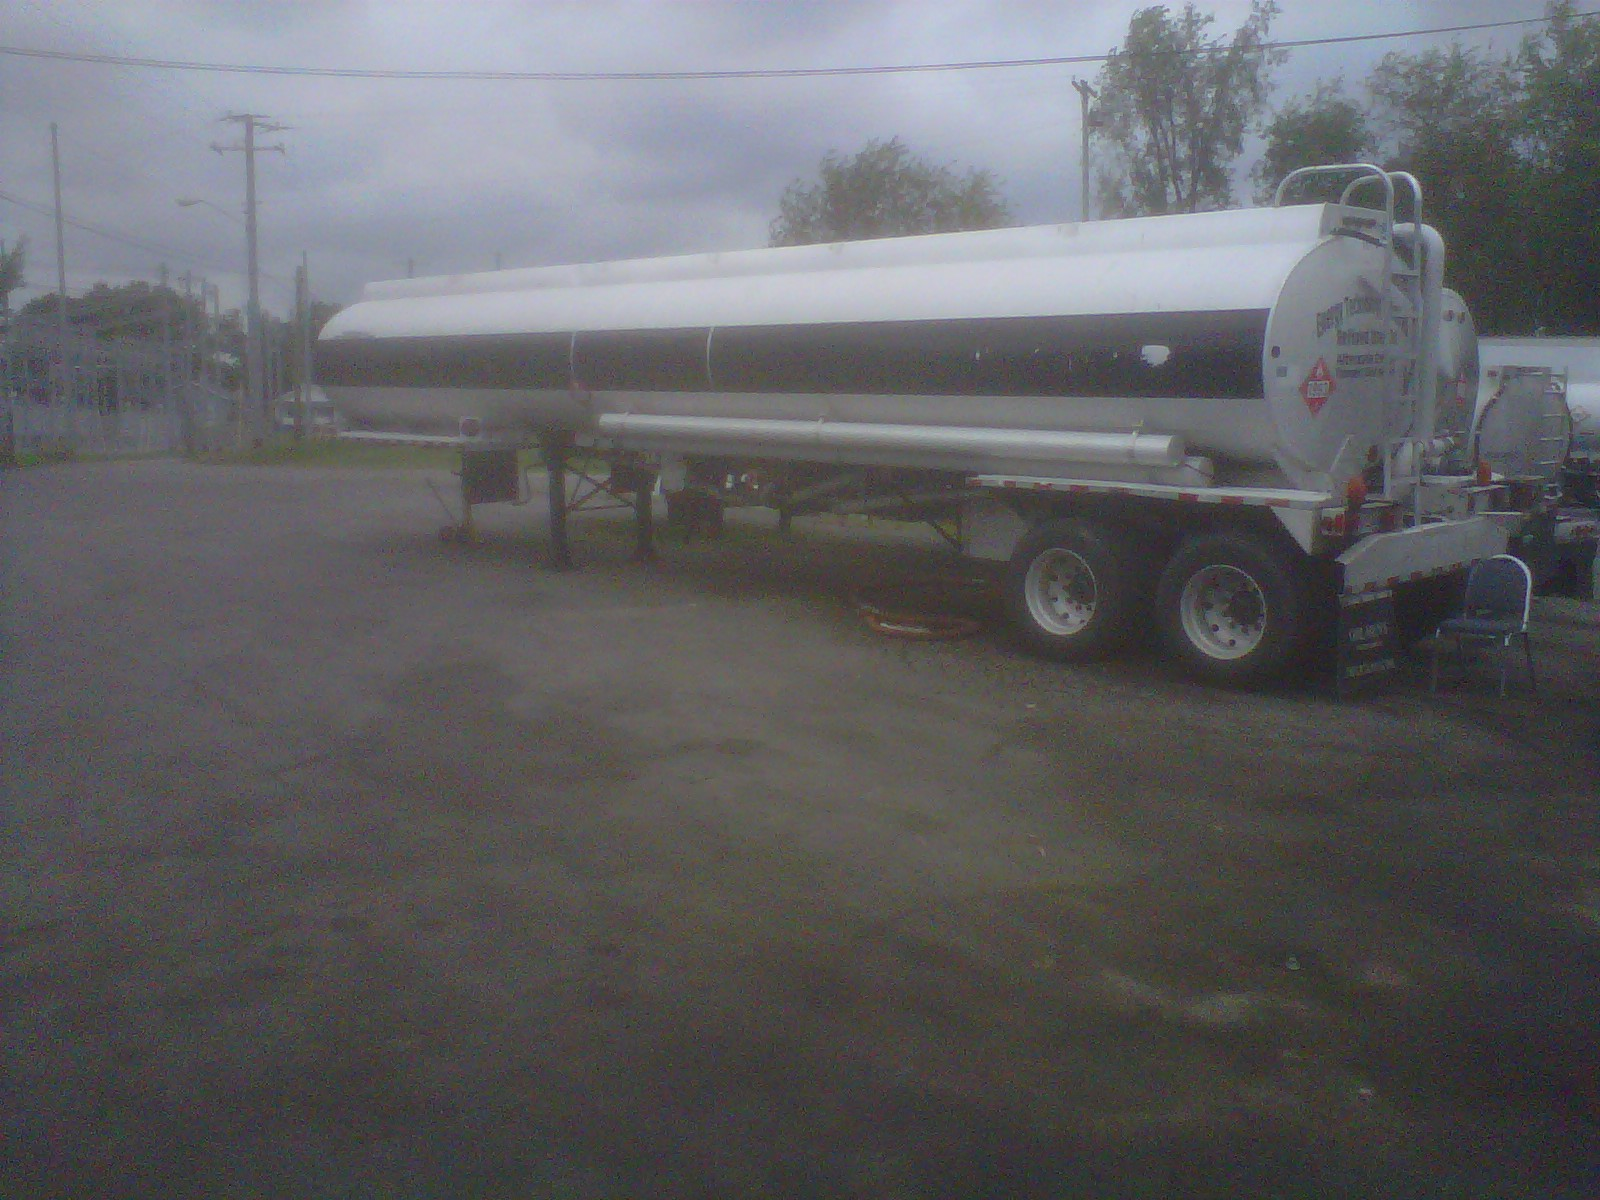 used 9000 Gallon Heil Tanker Trailer. Aluminum, road ready, 5 compartment, Vapor Recovery System, 45\'. This tanker is in excellent condition .